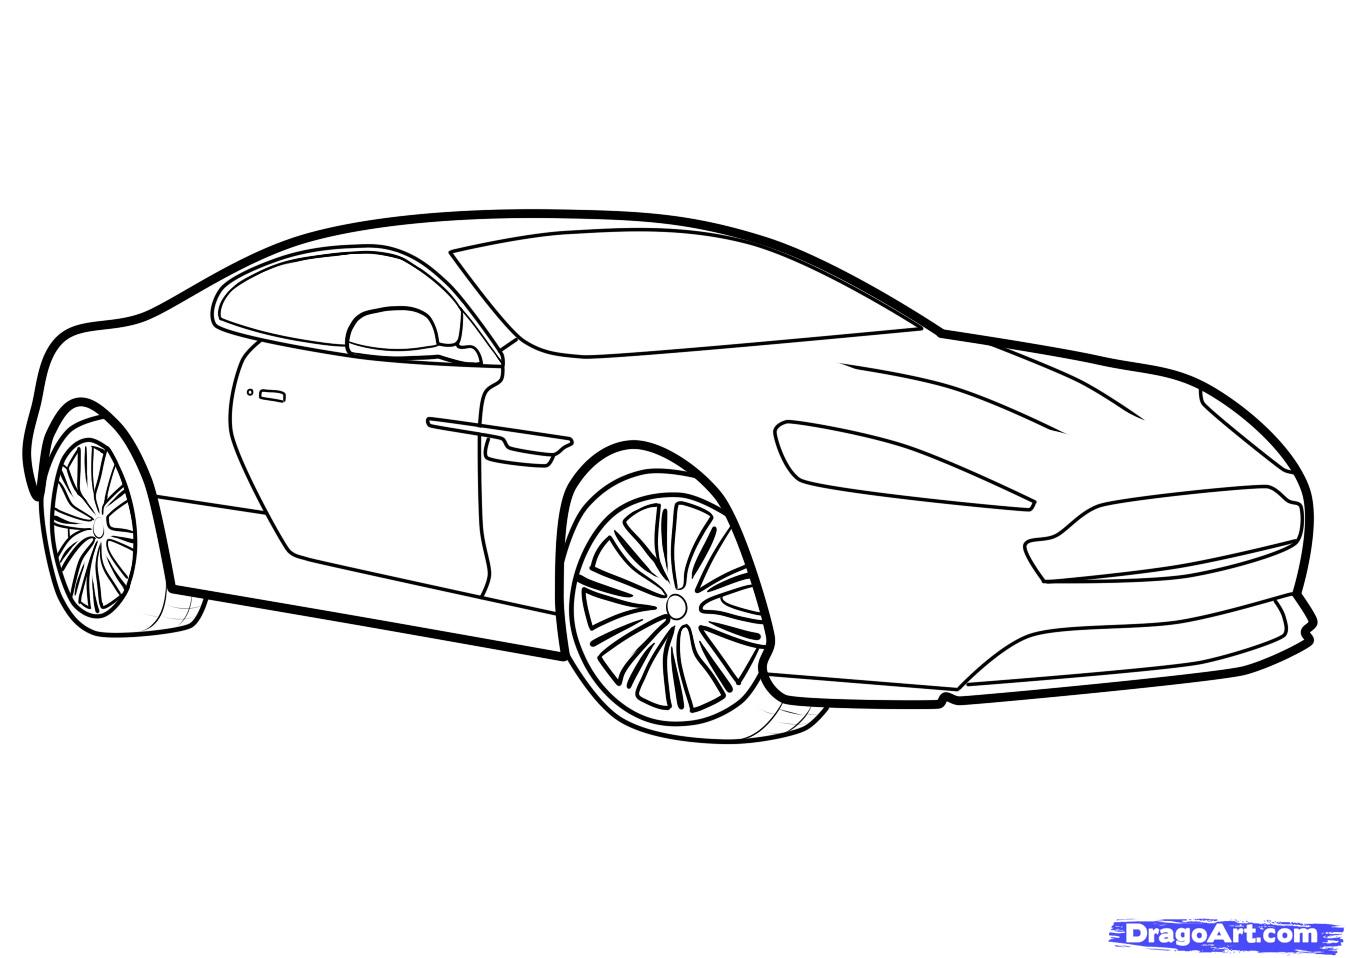 coloriages imprimer aston martin num ro 758386. Black Bedroom Furniture Sets. Home Design Ideas